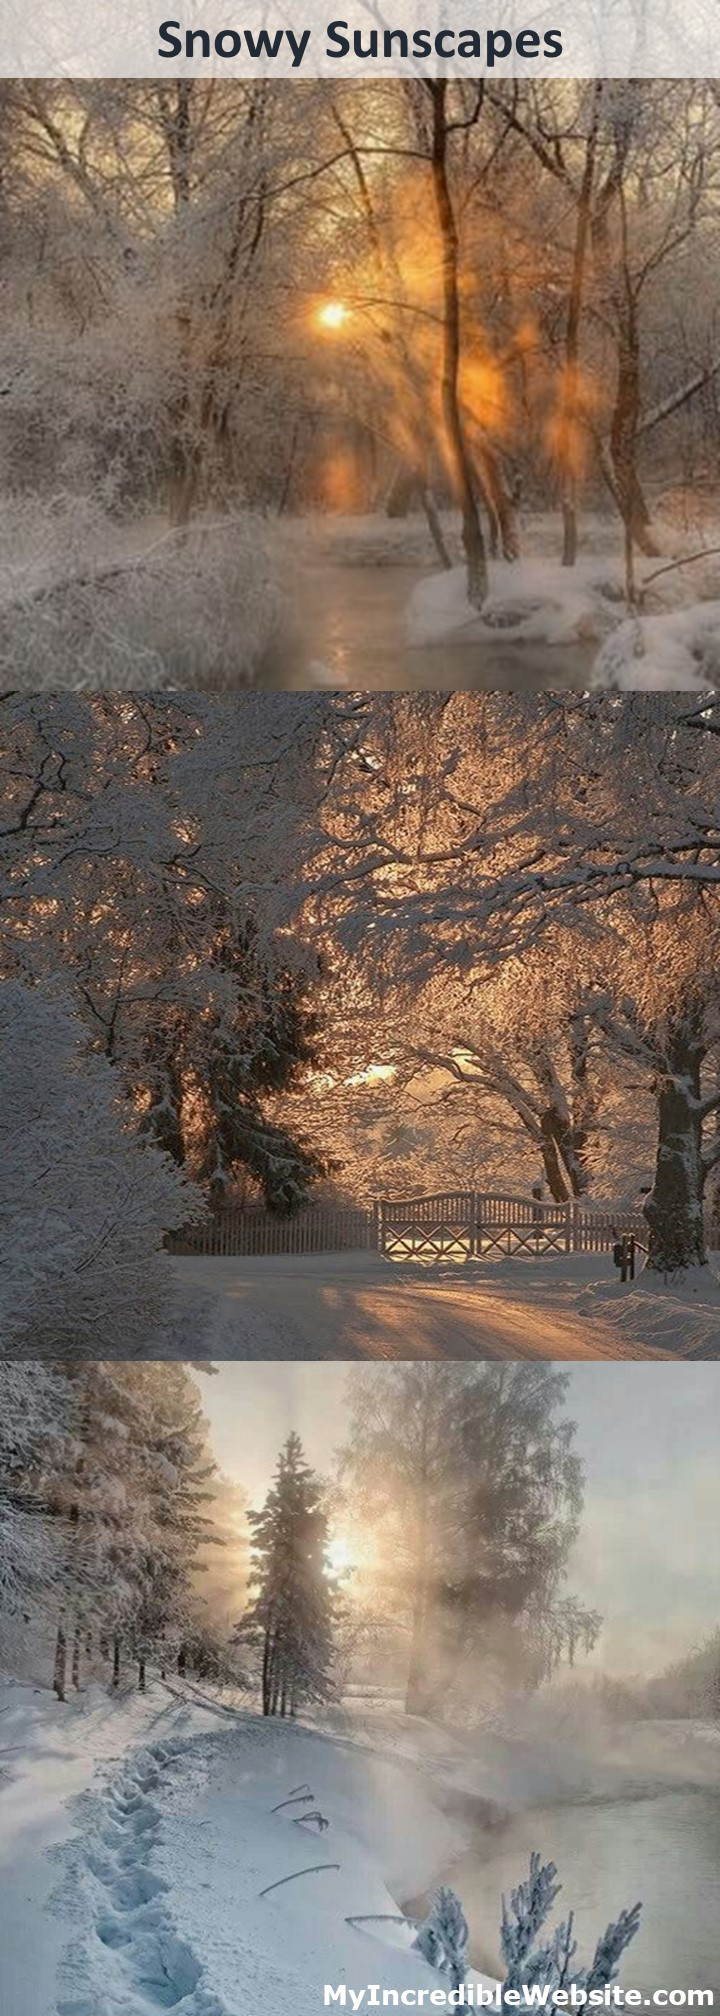 Snowy Sunscapes